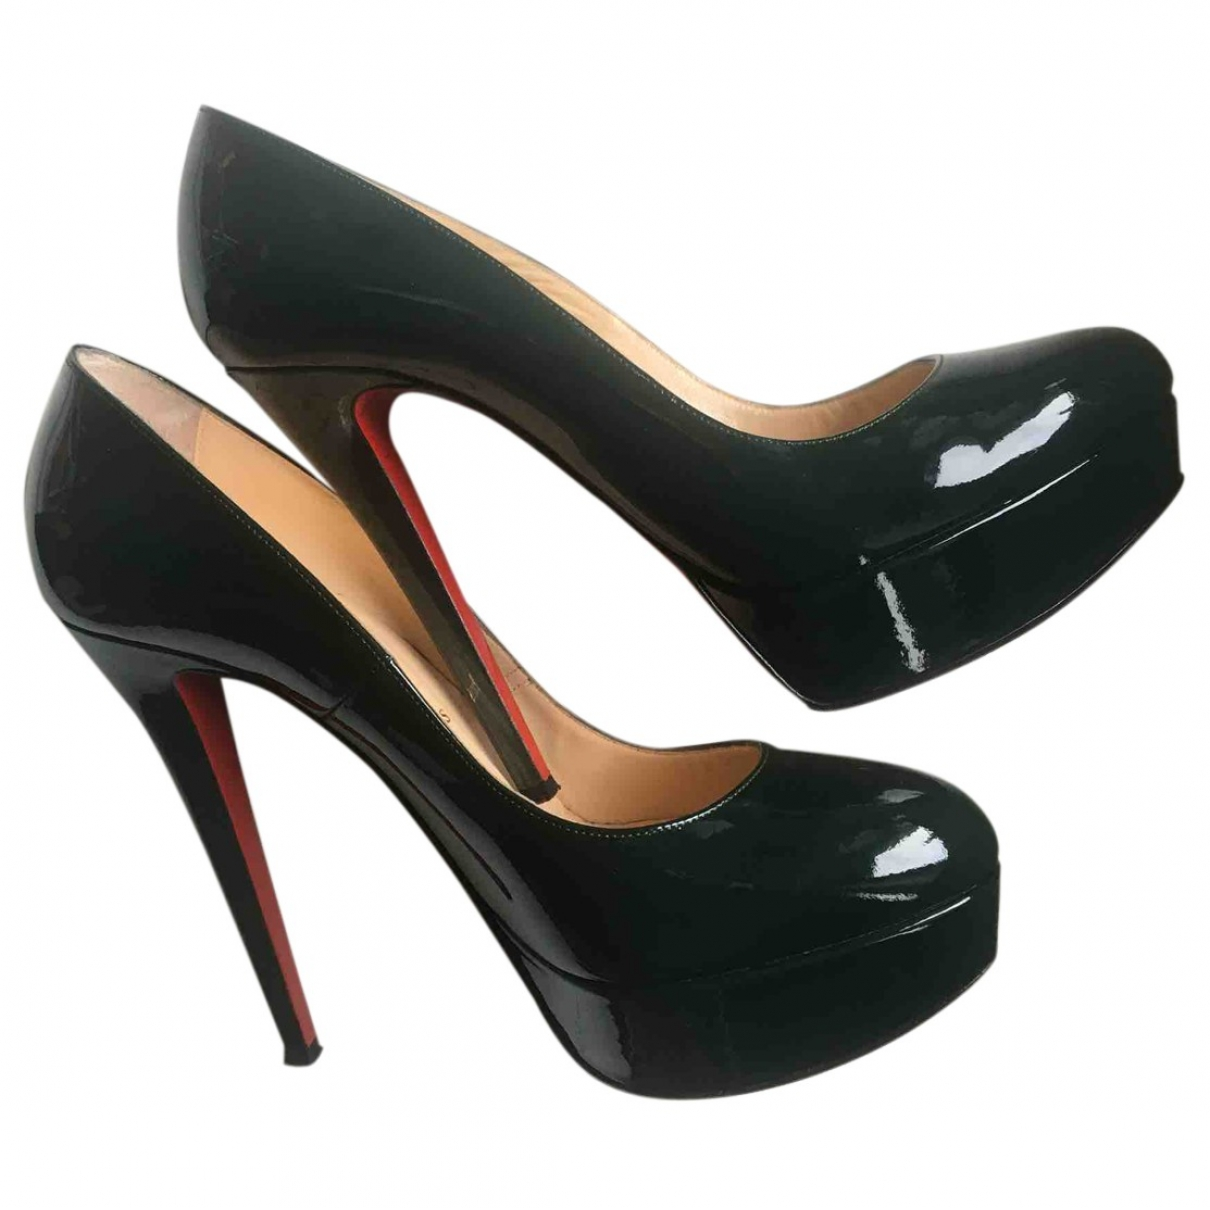 Christian Louboutin Bianca Pumps in  Gruen Lackleder